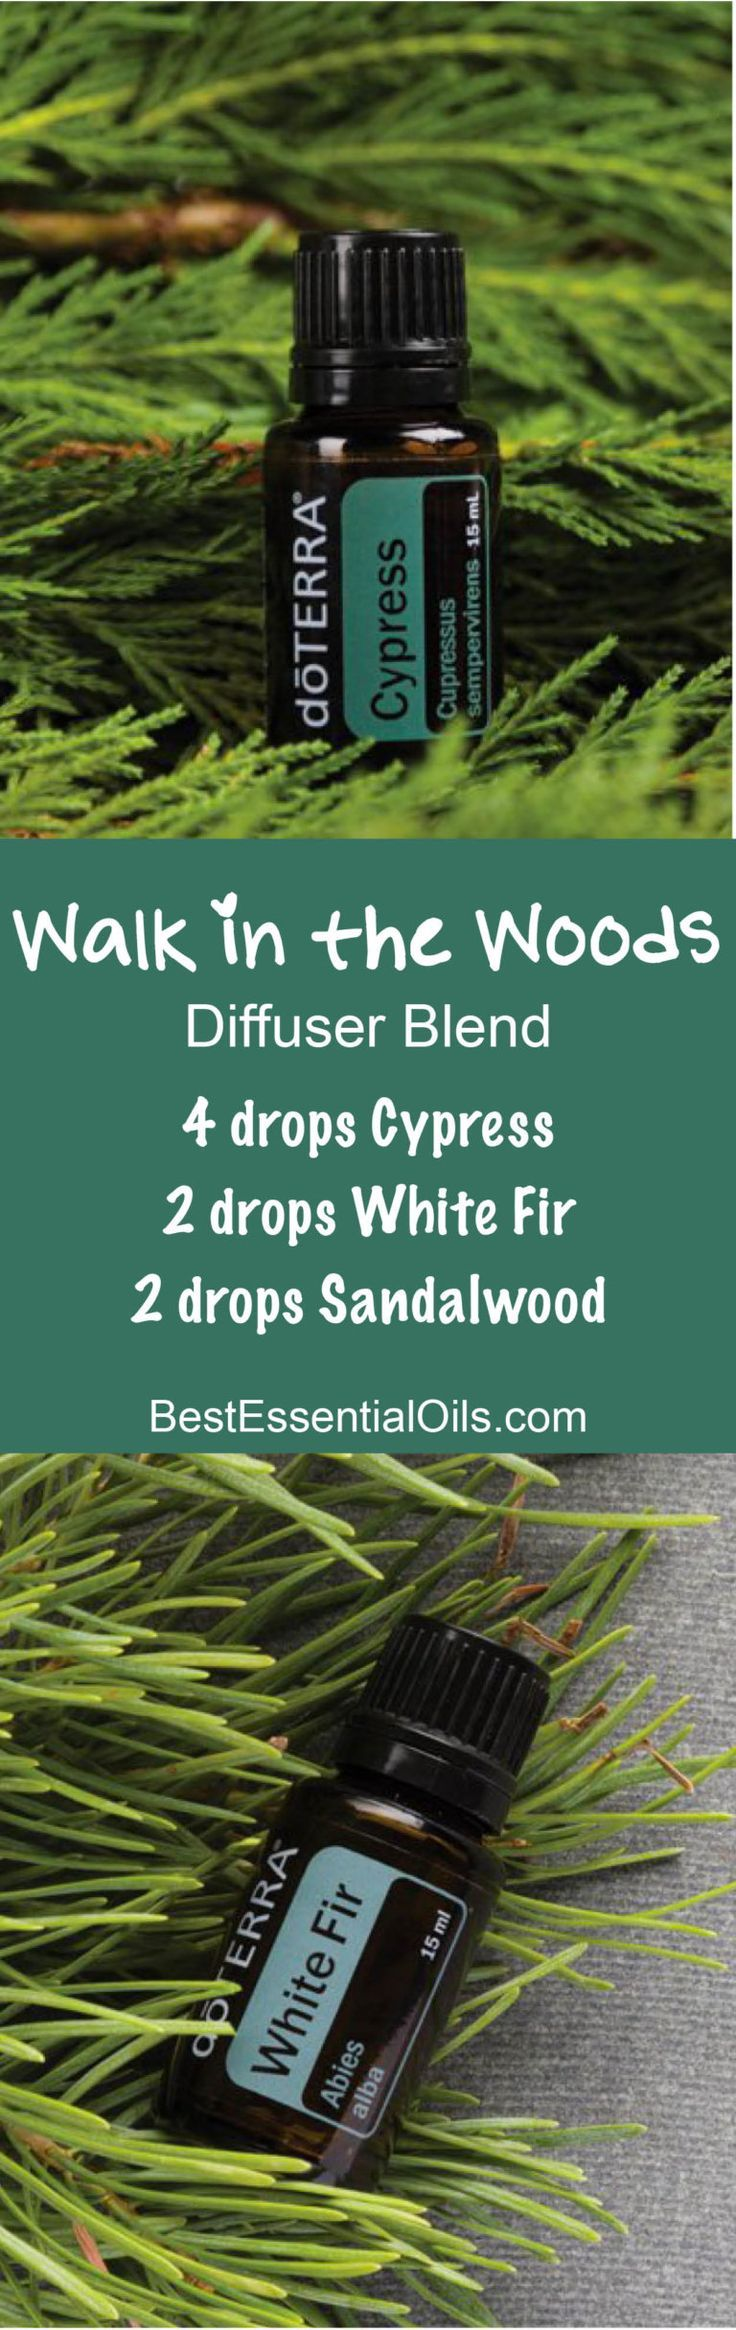 Walk in the Woods doTERRA Diffuser Blend